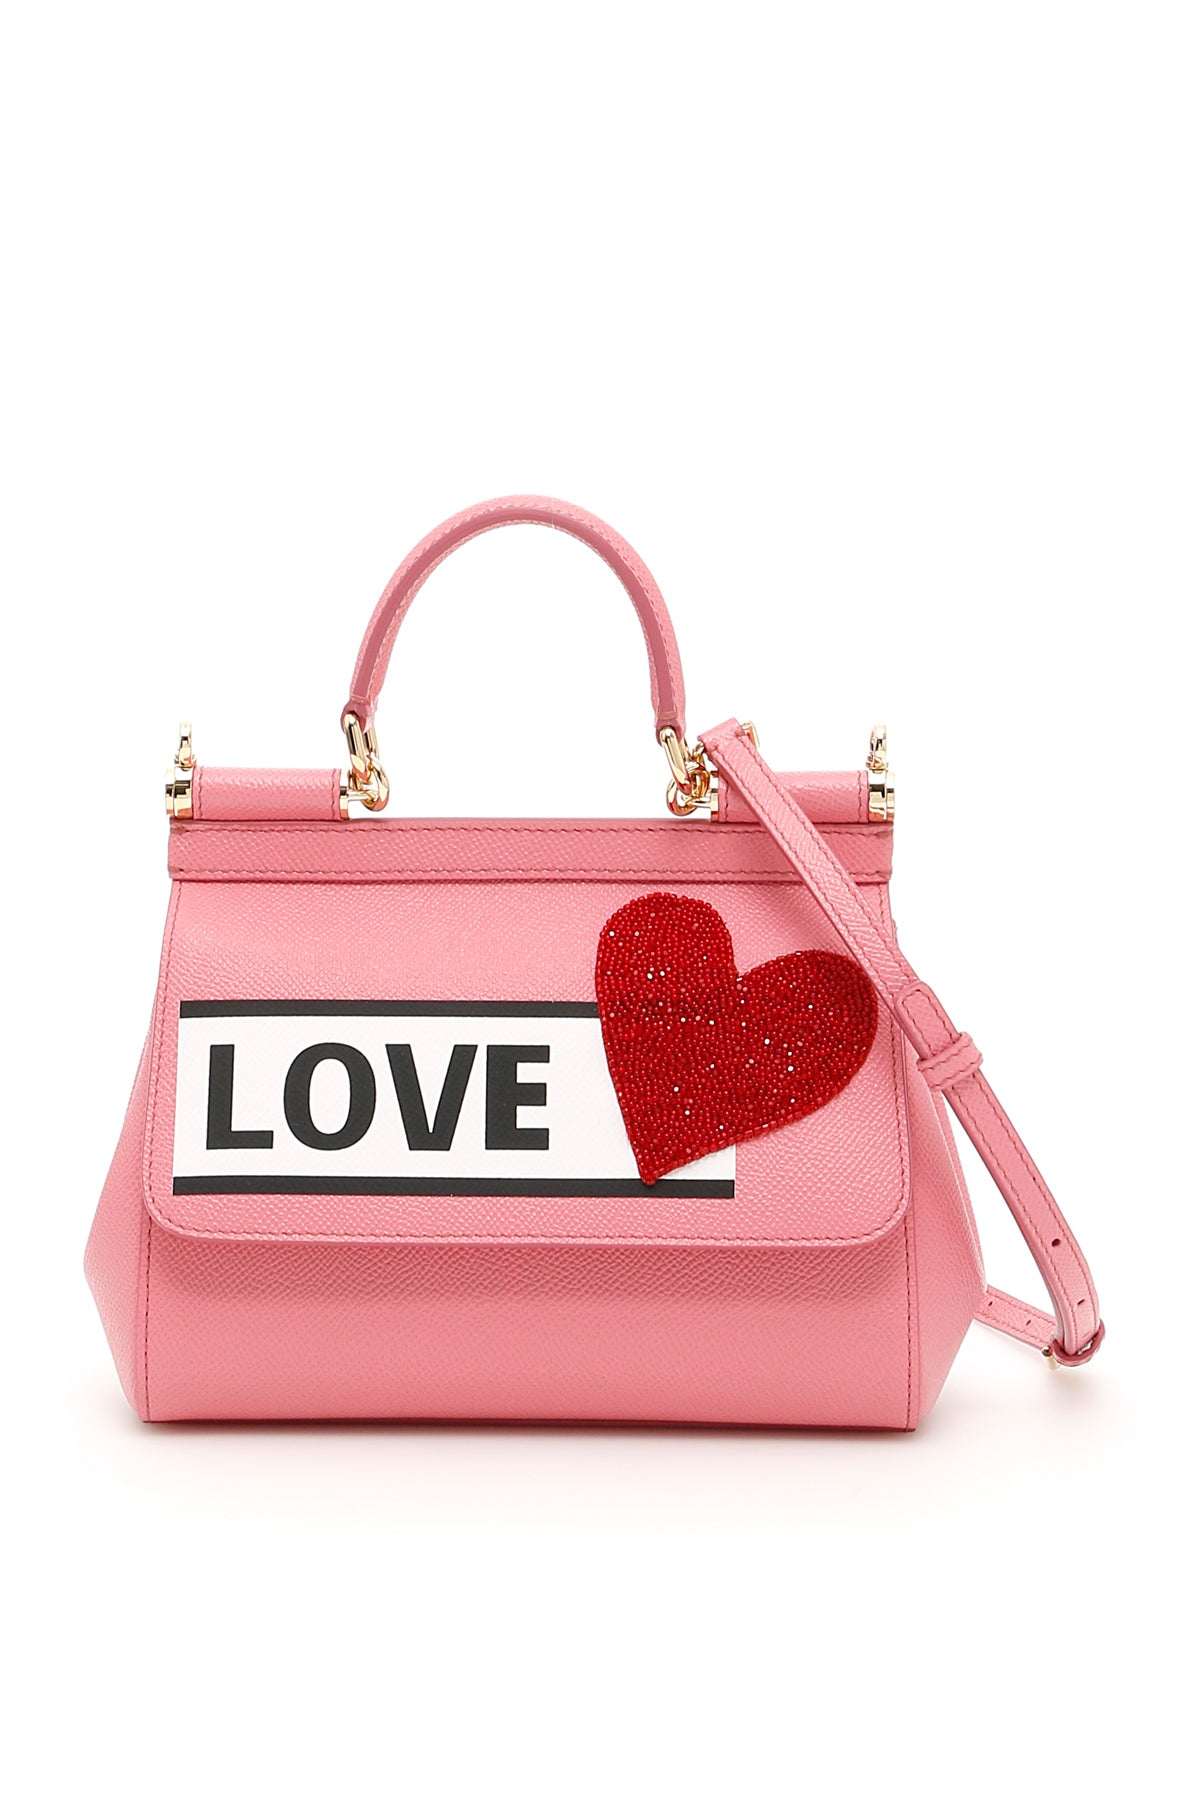 DOLCE & GABBANA LOVE TOTE BAG